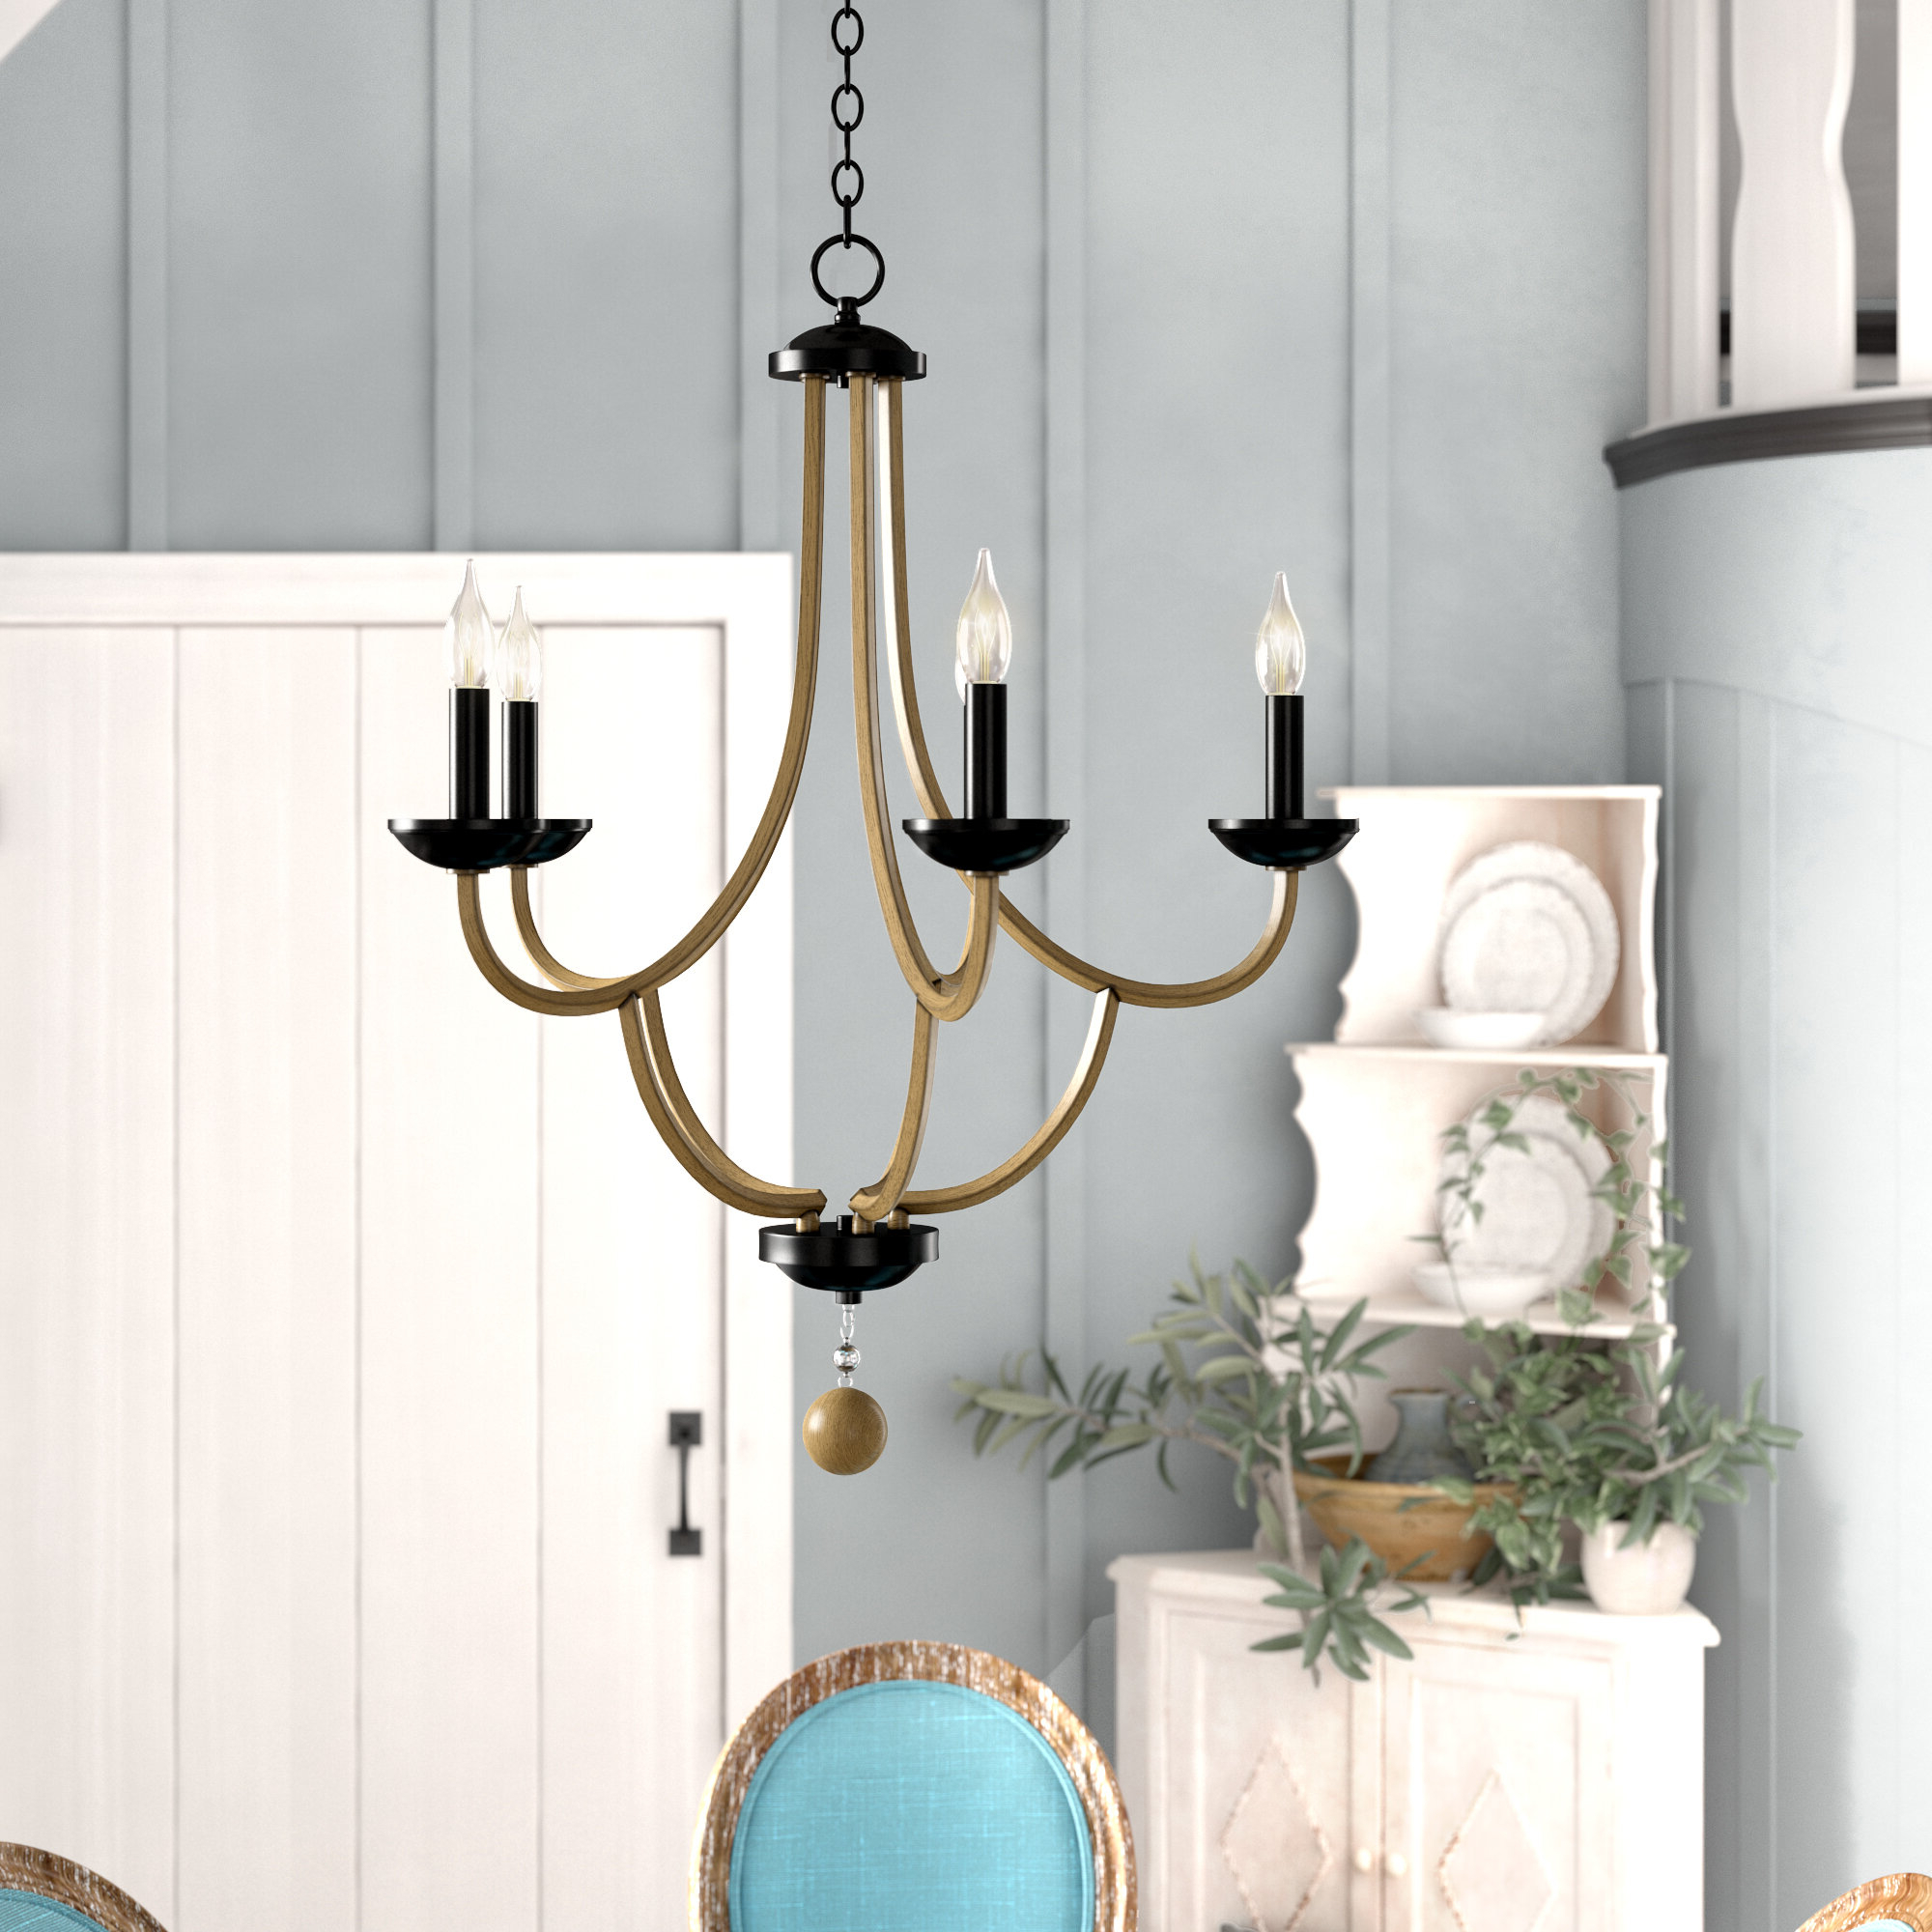 Shaylee 5 Light Candle Style Chandeliers With Regard To Popular Winget 5 Light Candle Style Chandelier (View 22 of 25)